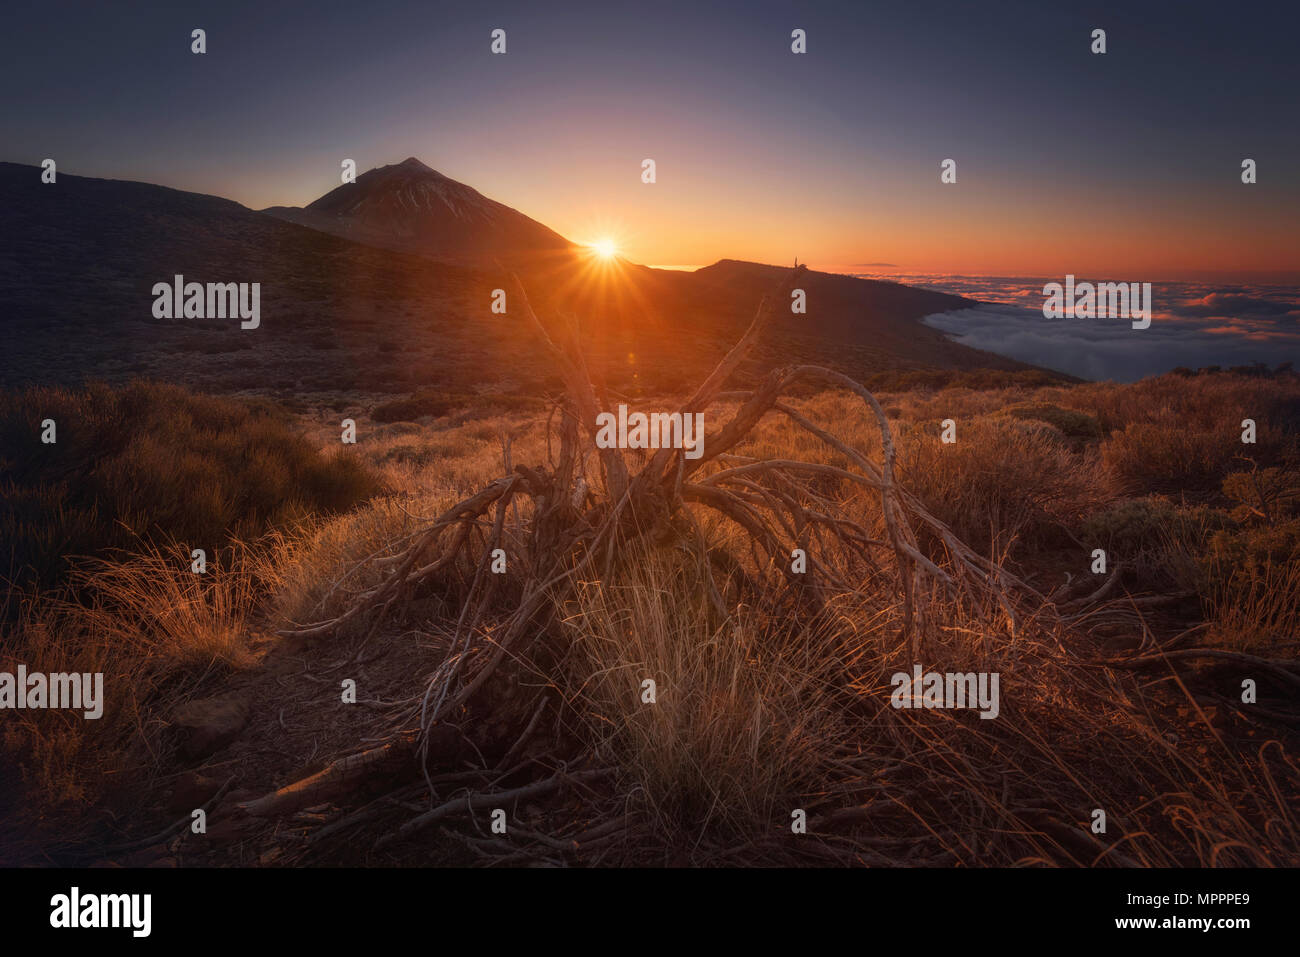 Spain, Canary Islands, Tenerife, Teide National Park at sunset Stock Photo